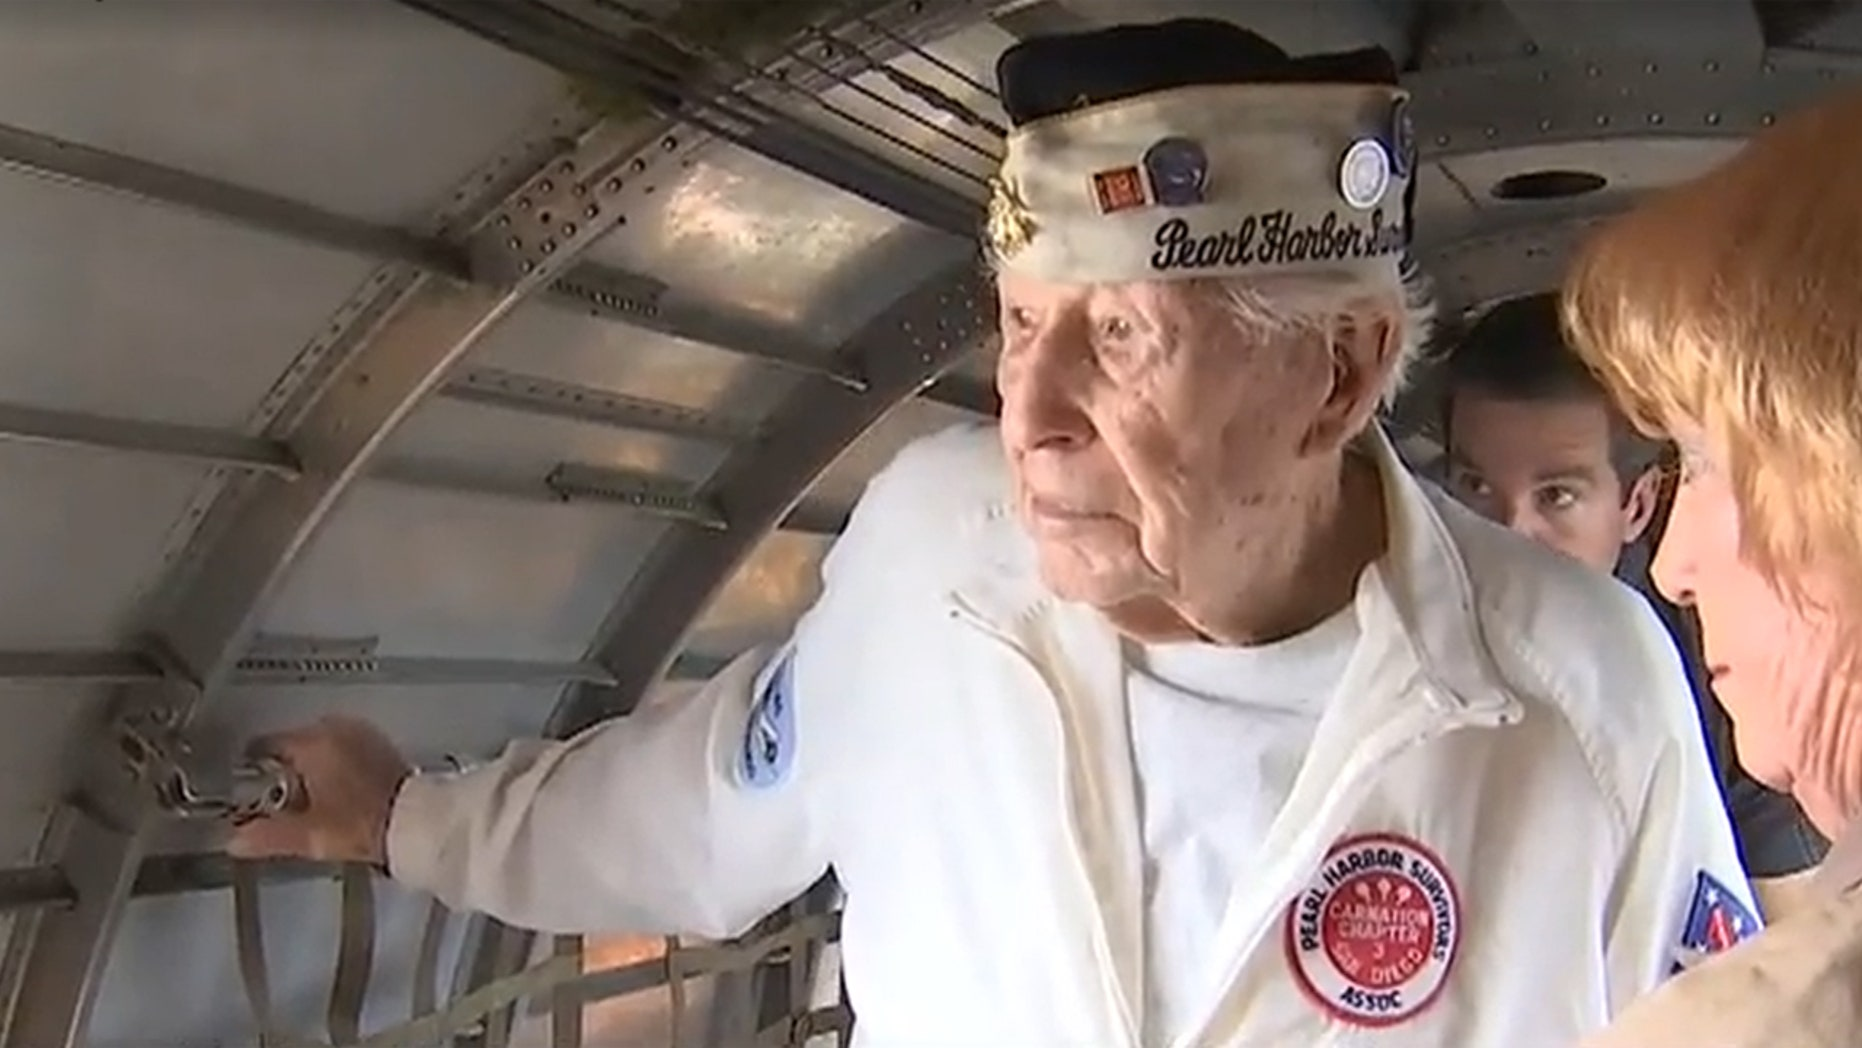 On his birthday, WWII veteran Eugene Leonard got to fly in a B-17 bomber.